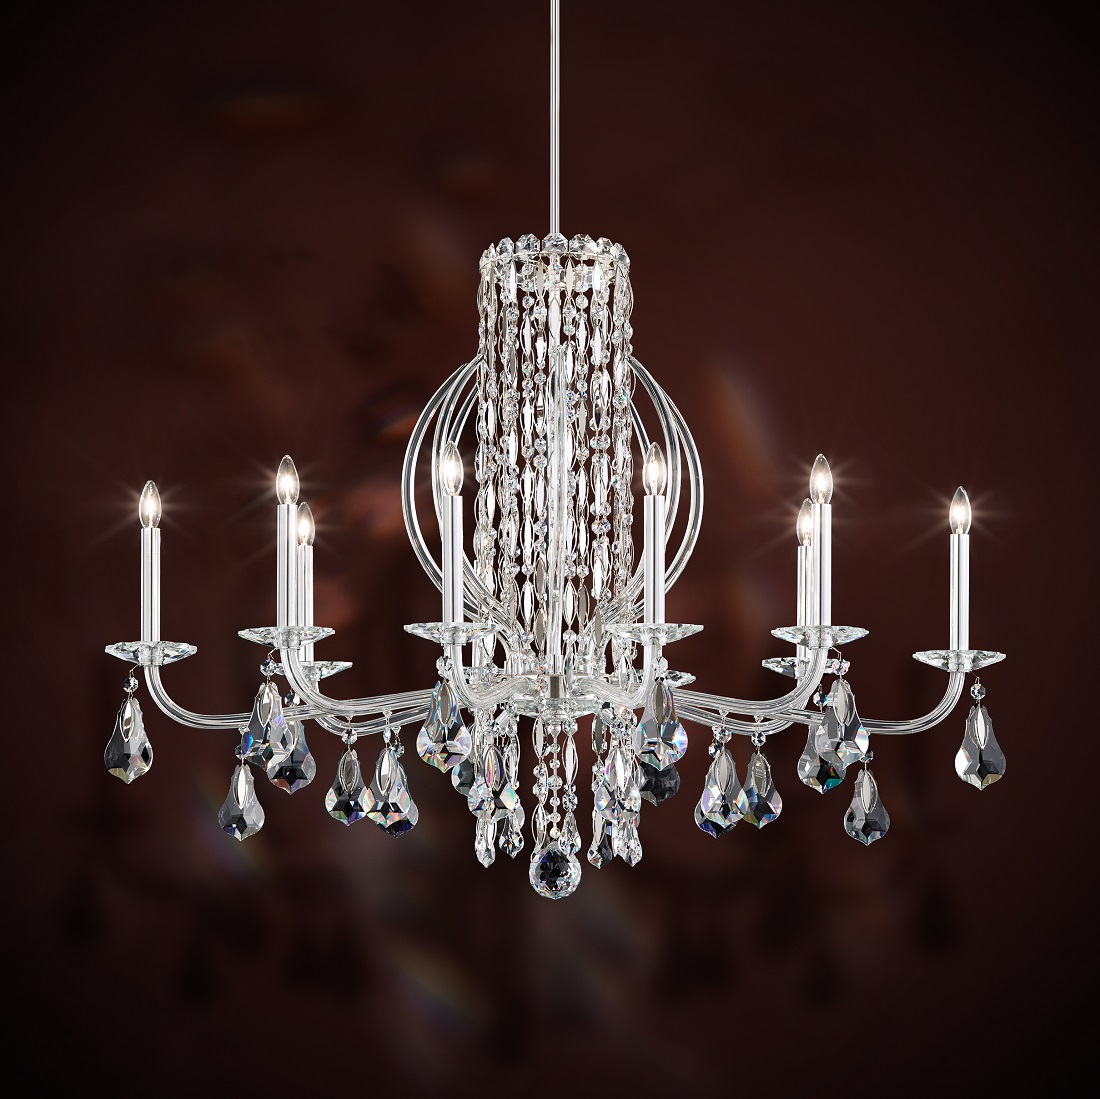 Schonbek Modern Crystal Chandelier for Dining Room, Accentuations Brand